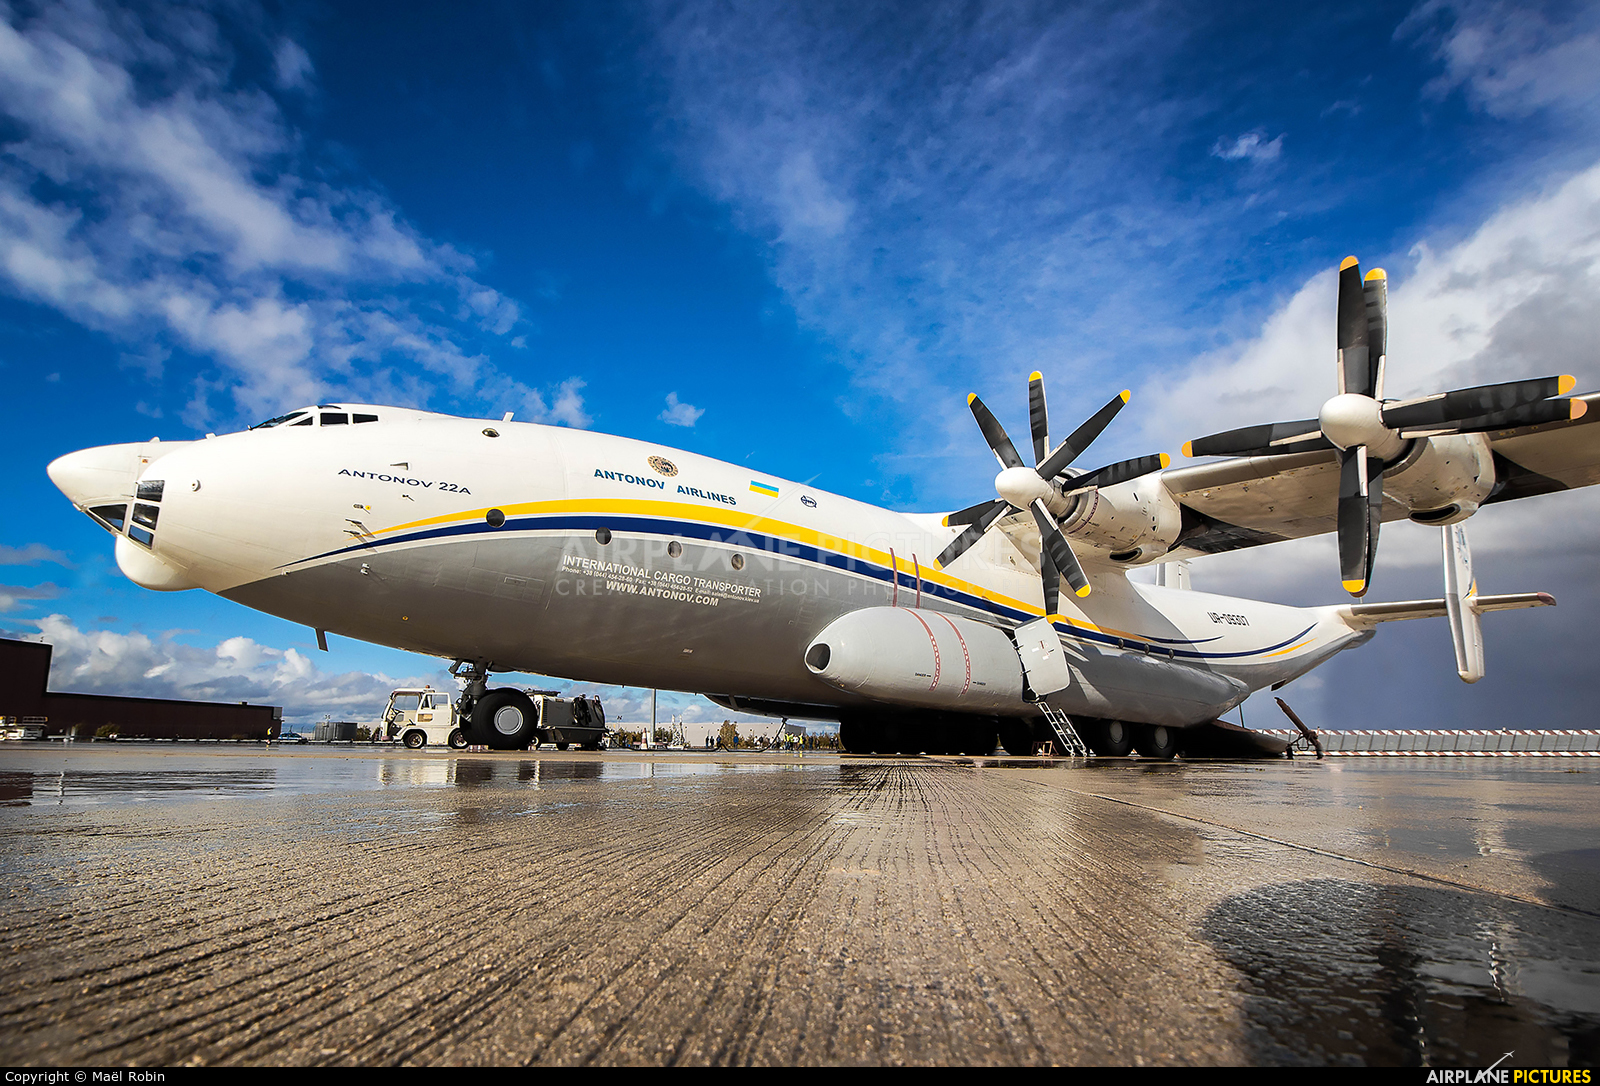 Antonov Airlines /  Design Bureau UR-09307 aircraft at Chalons Vatry Airport